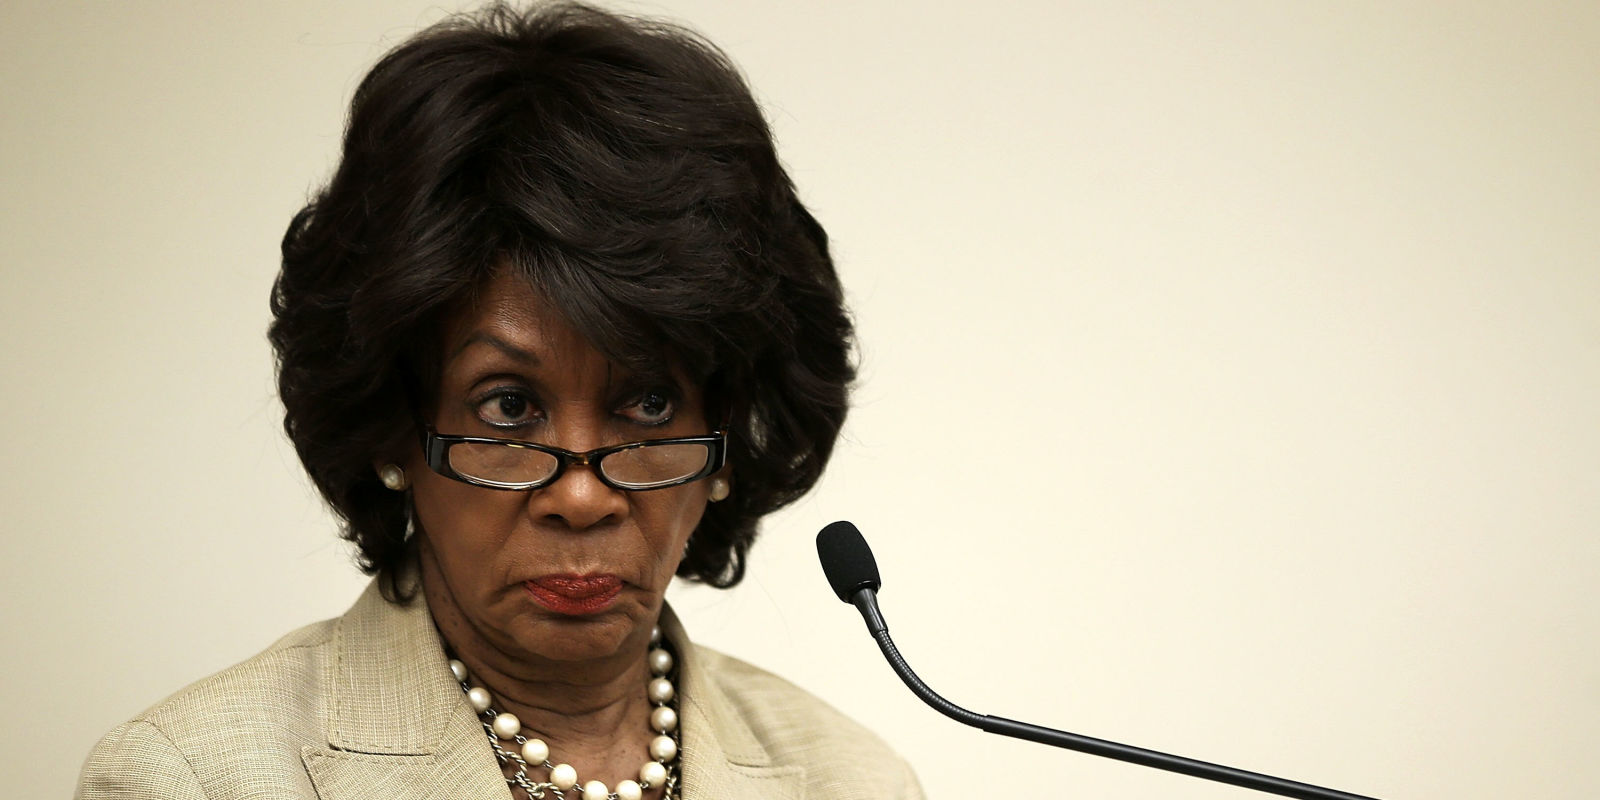 Granger Watch Episode Three: Does Maxine Waters have a Time Turner?